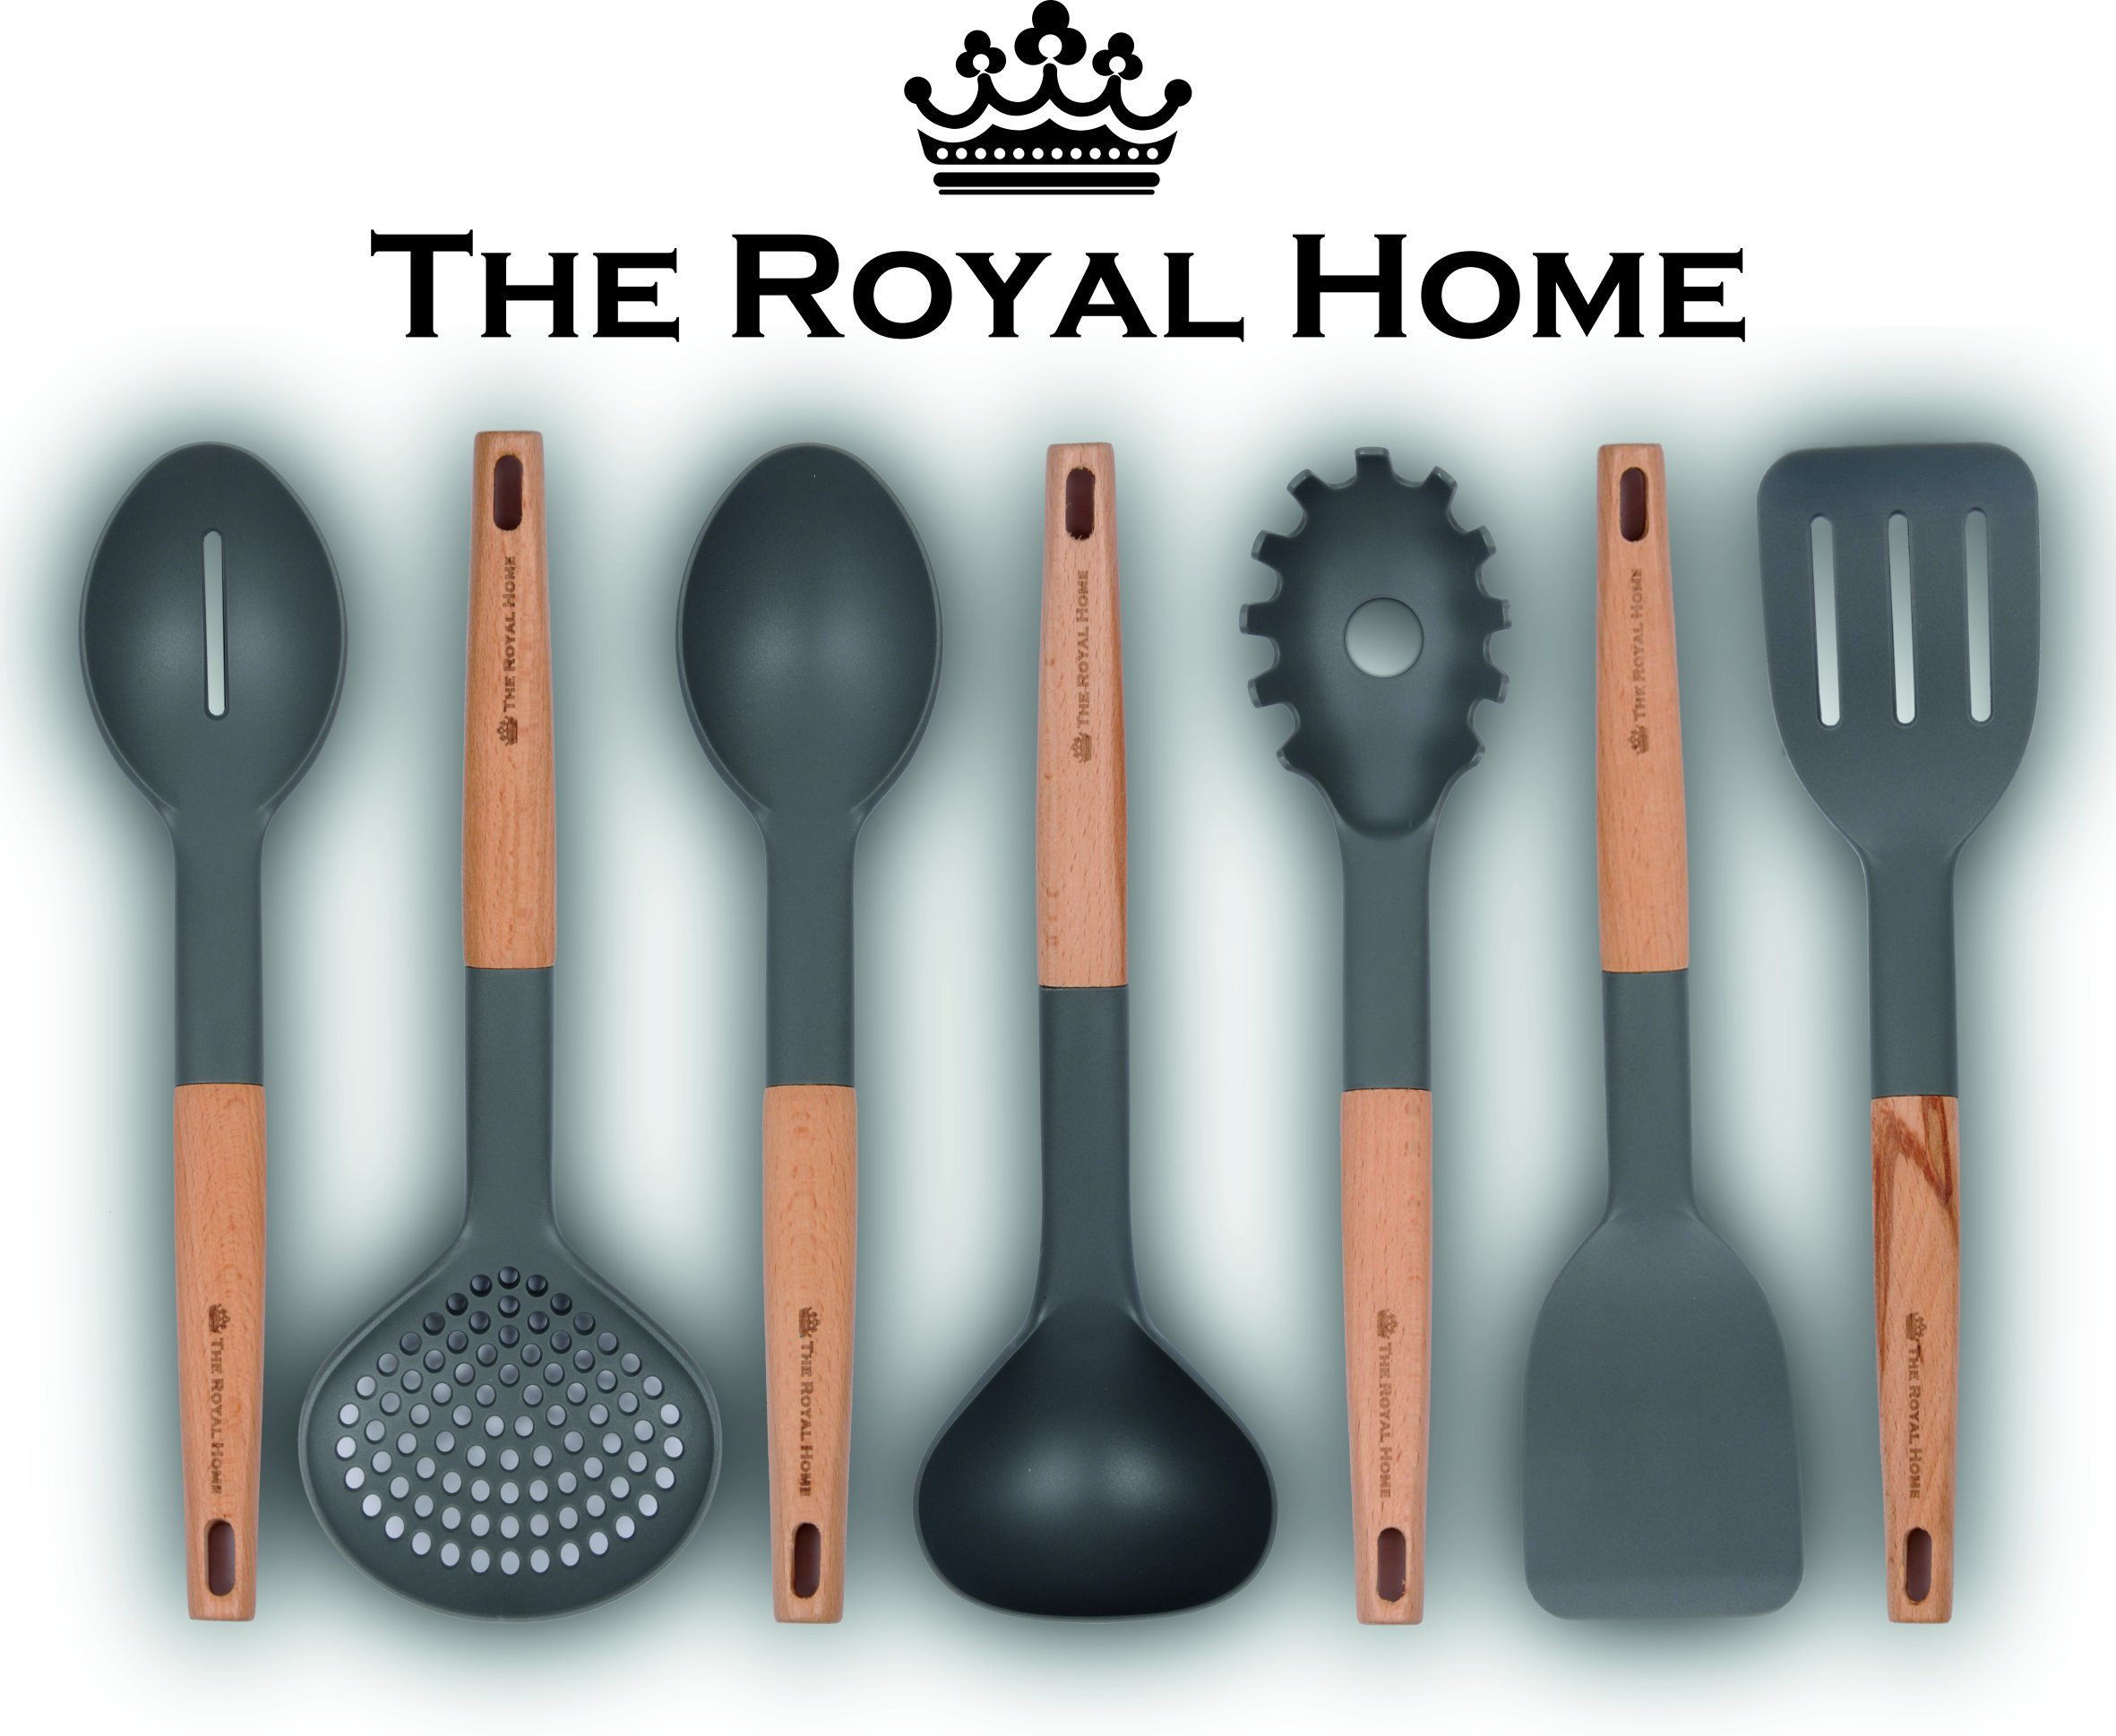 Kitchen Utensil Set | 7 Piece Wooden Handle Cooking Utensils | Nonstick Kitchen Gadgets | Nylon Kitchen Tool Kit | Pasta Spoon, Slotted Turner, Spoon, Spatula, Strainer, Ladle, Slotted Spoon